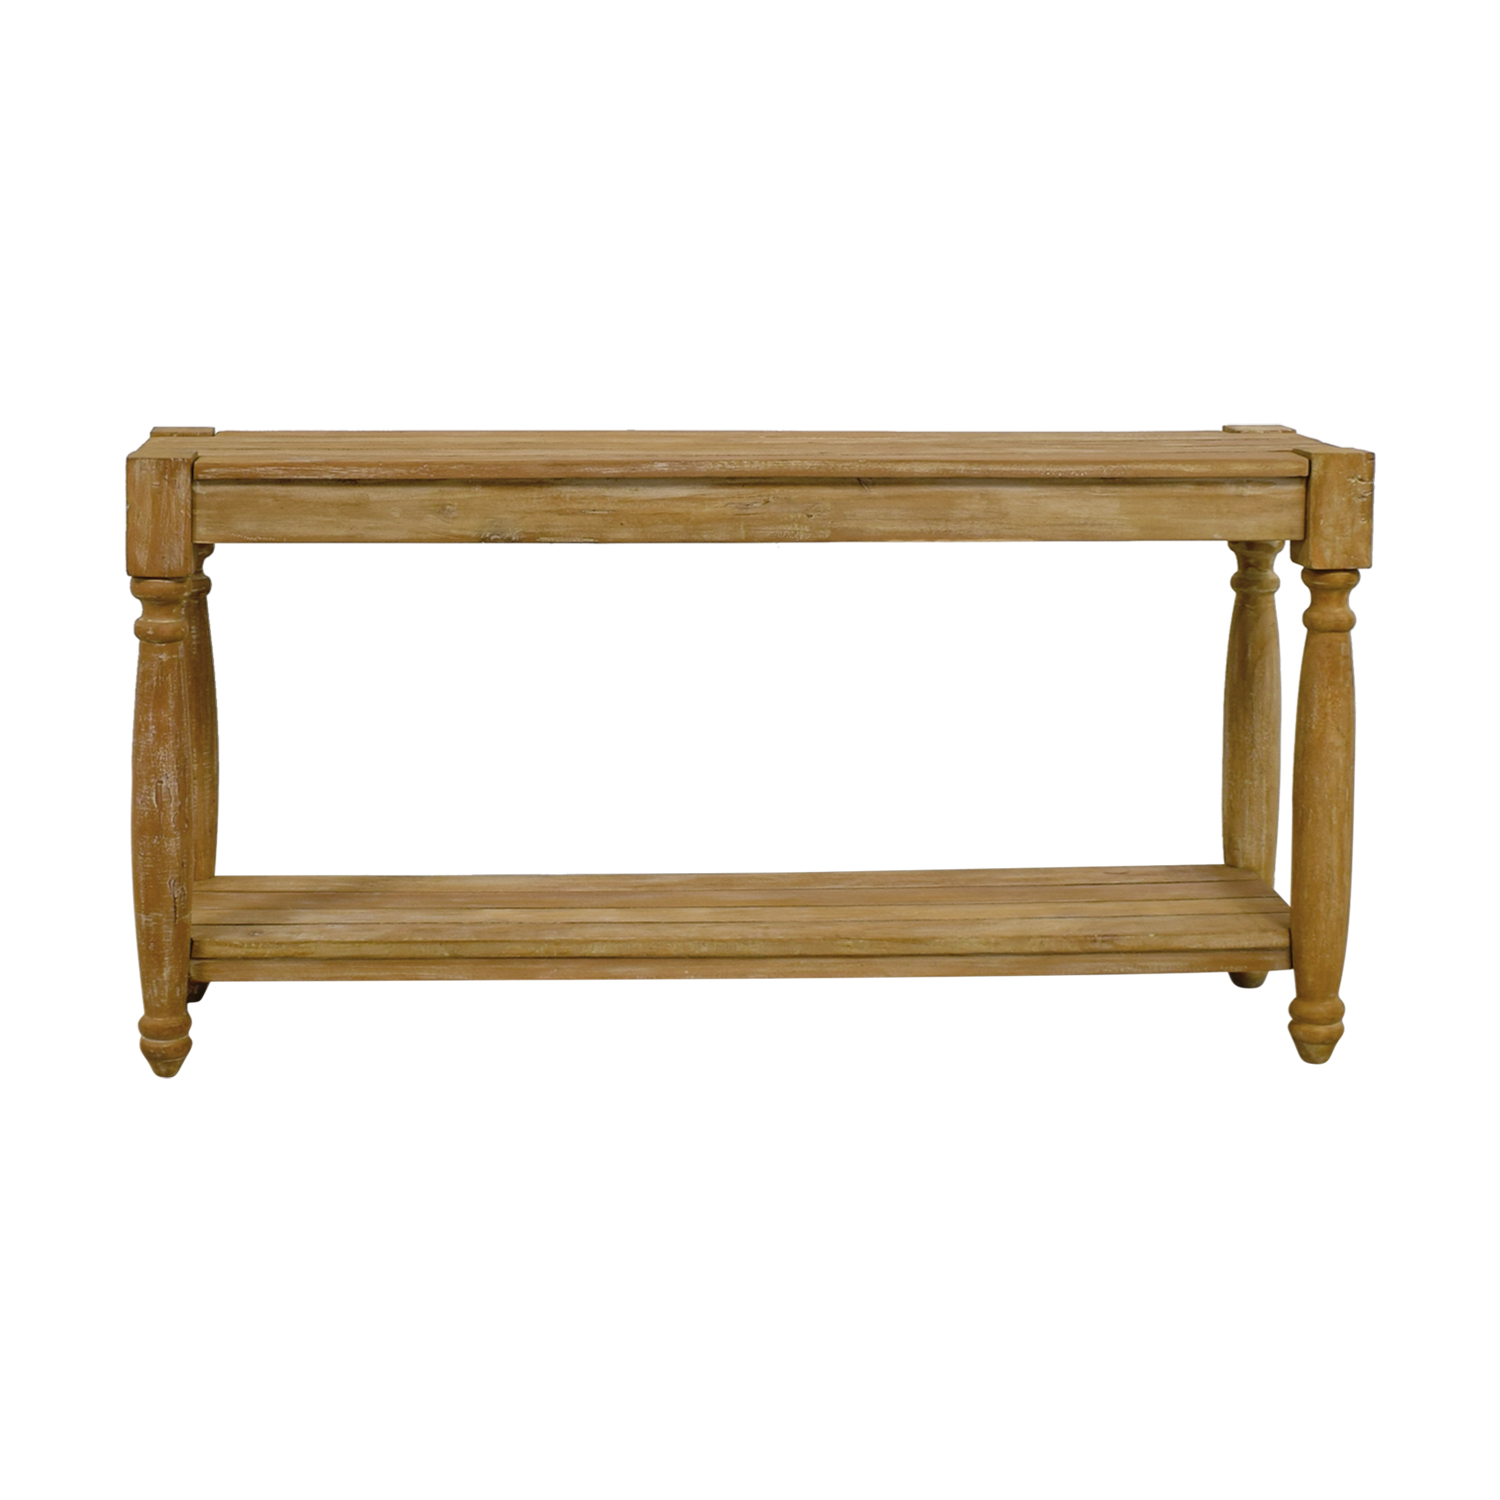 77 Off Homegoods Natural Wood Console Table Tables